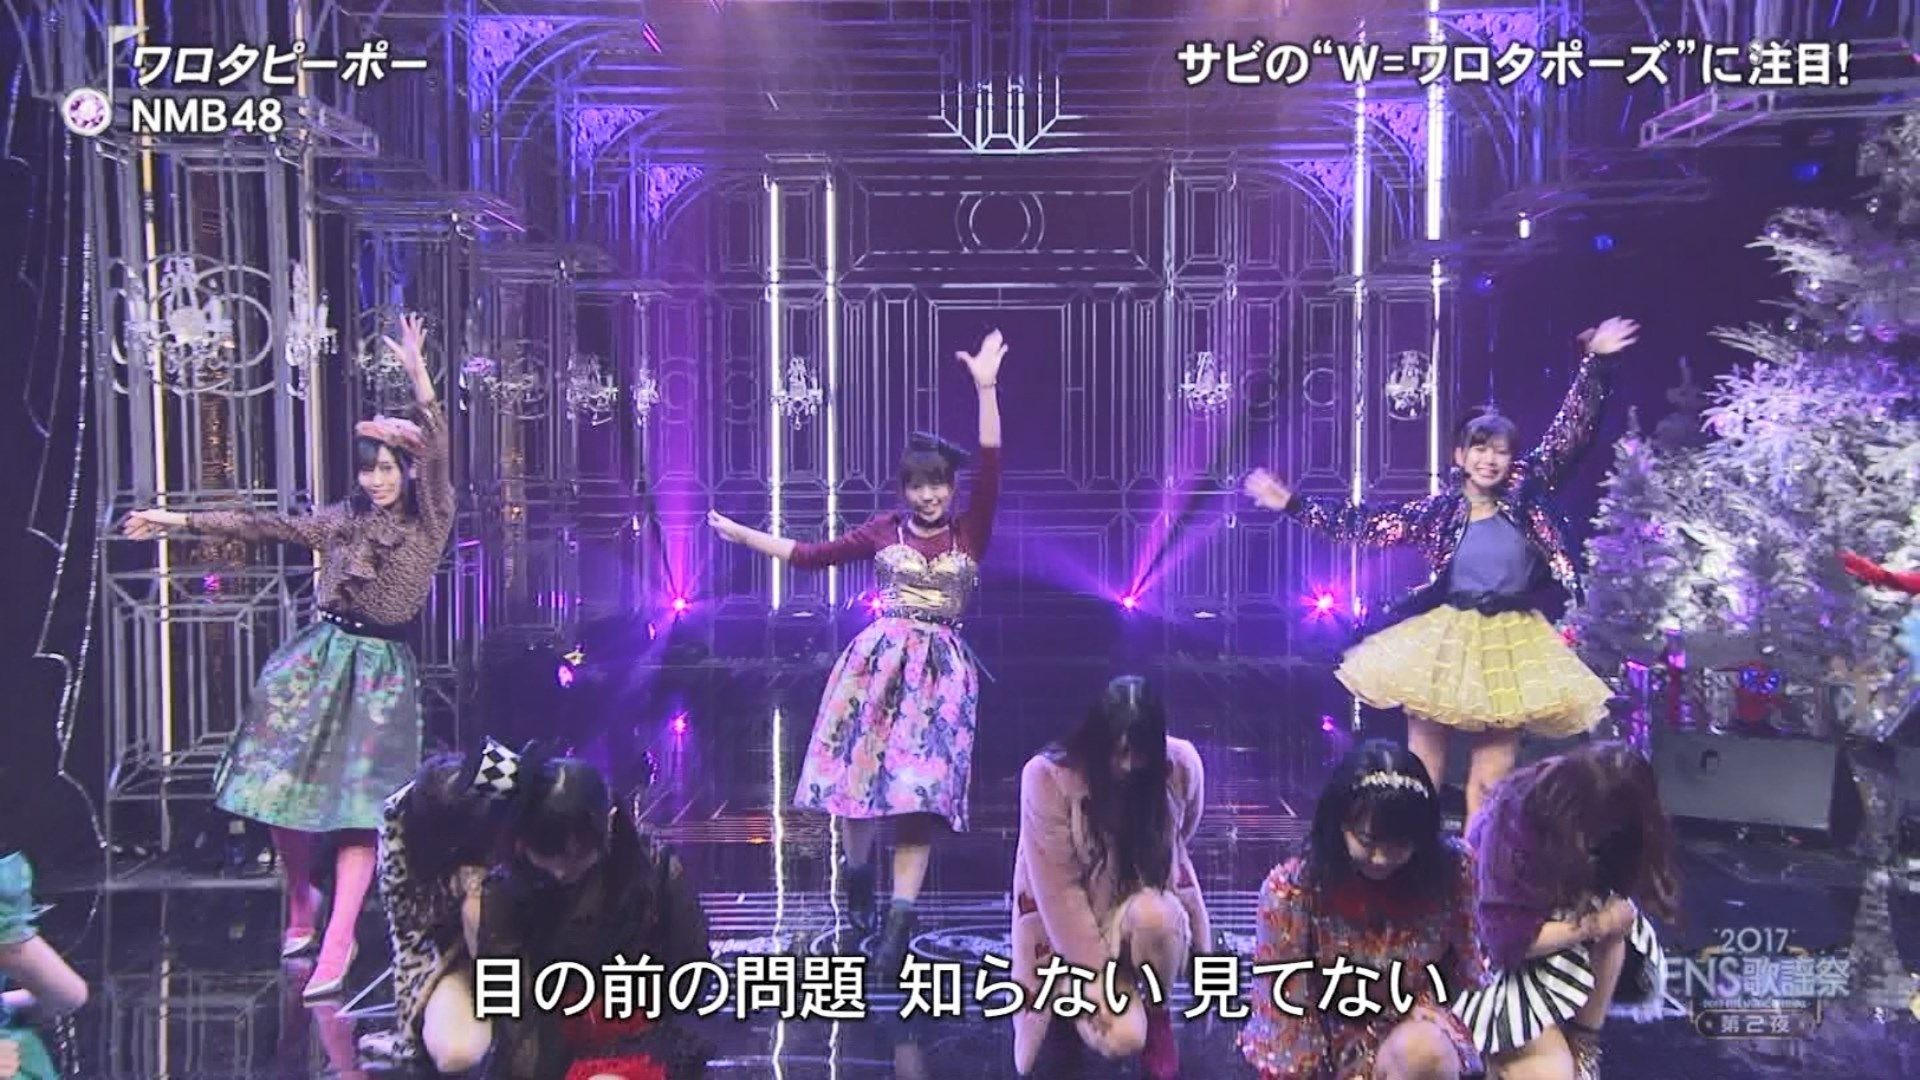 2017FNS歌謡祭第2夜・NMB48ワロタピーポーキャプ-048